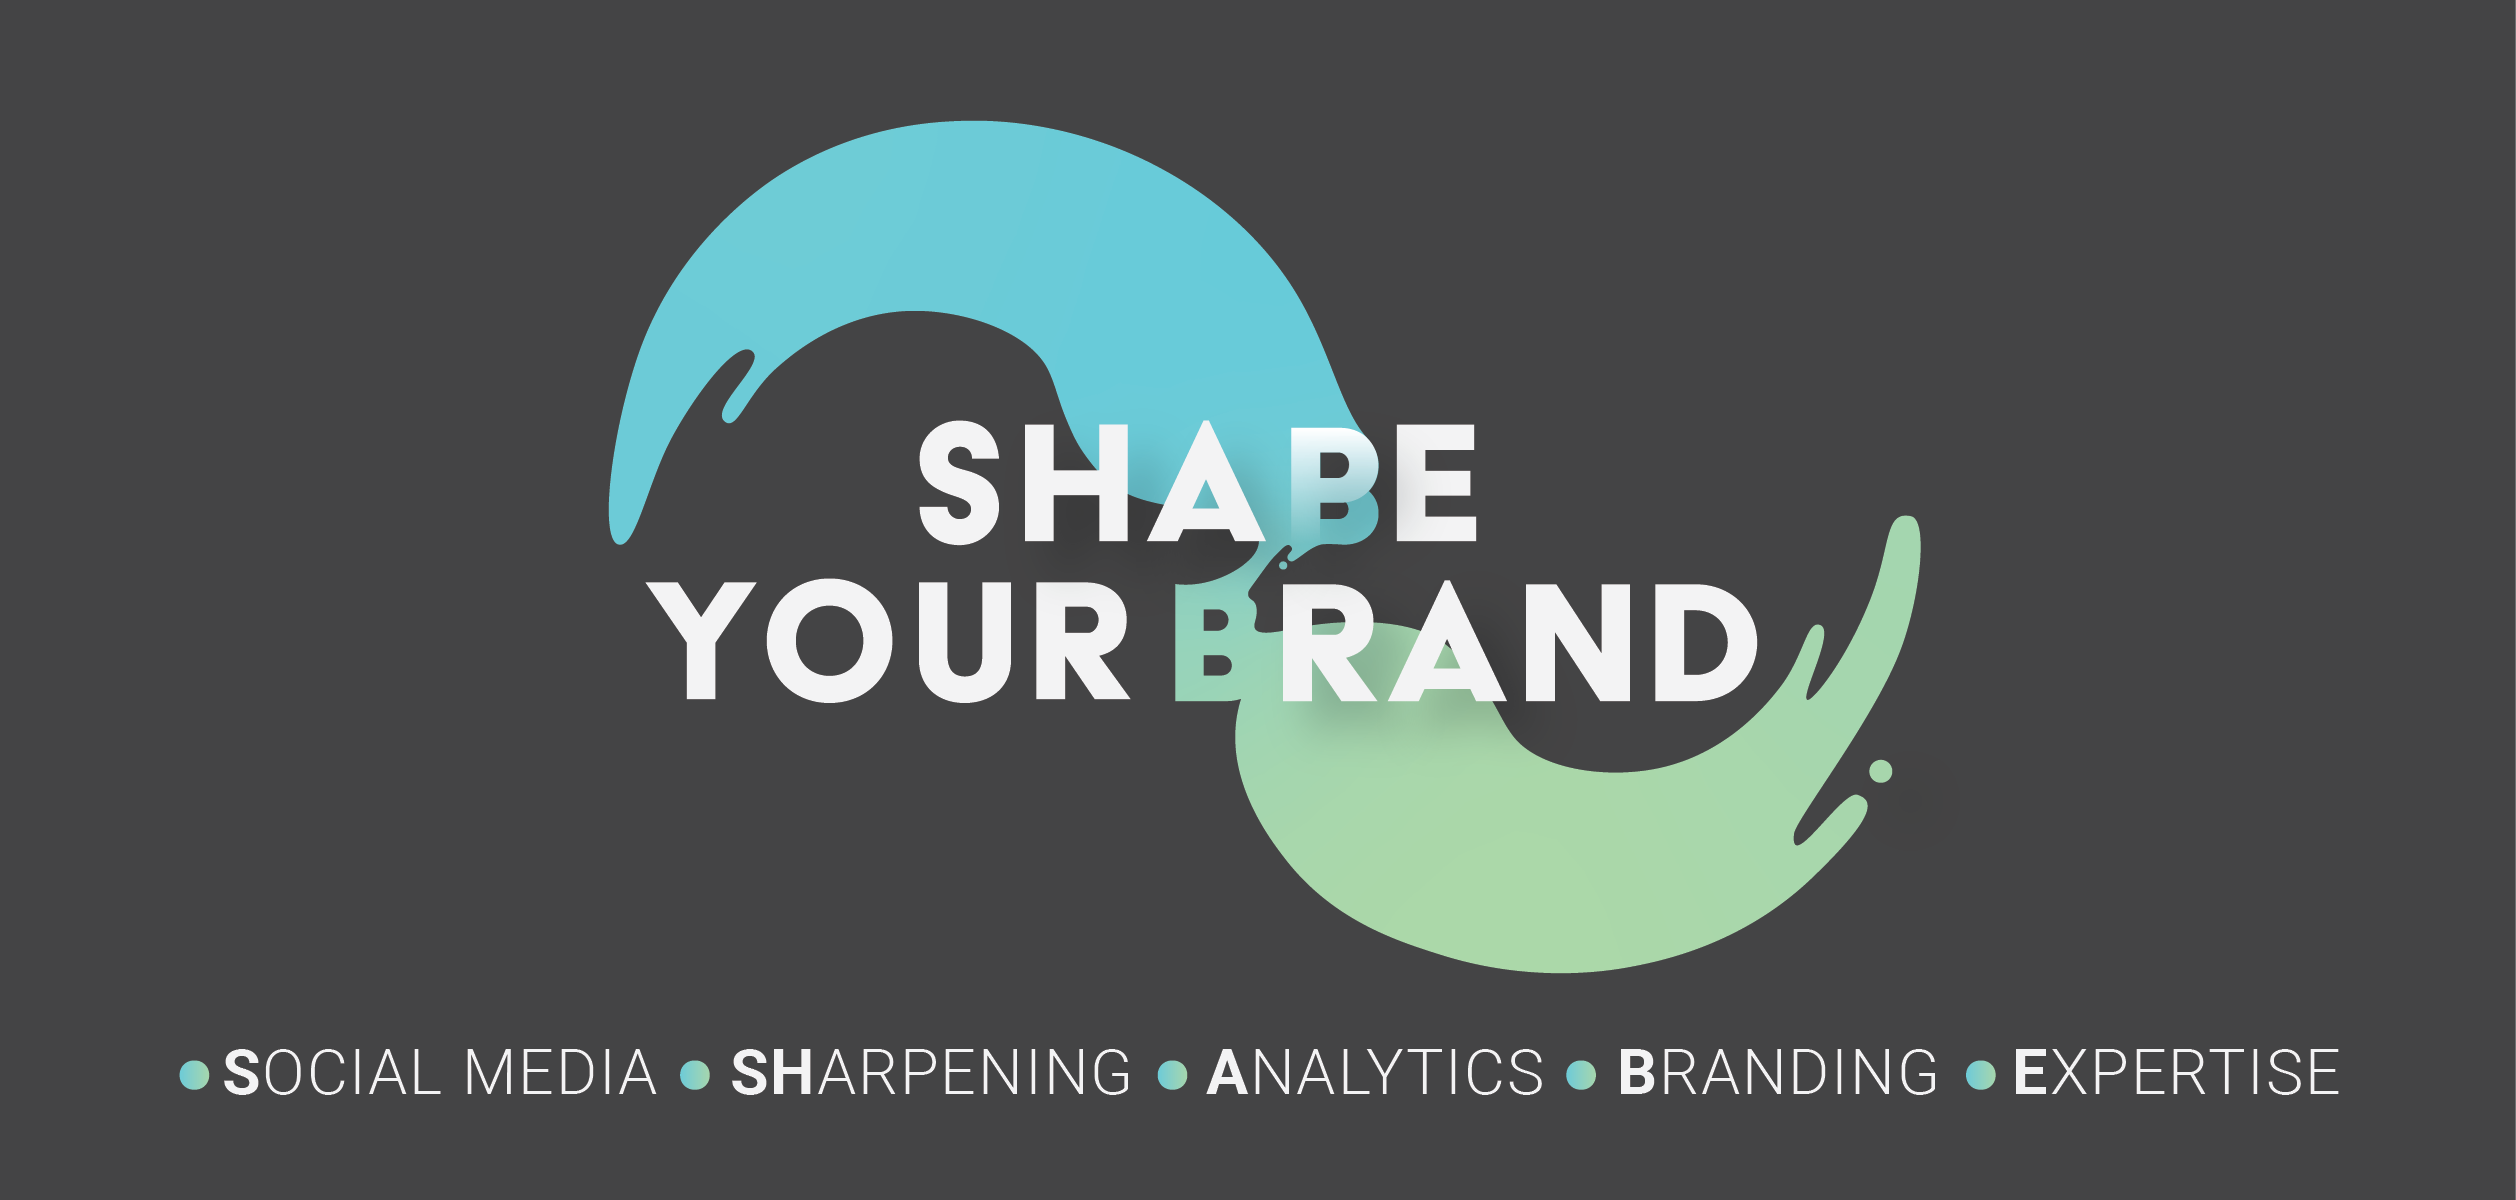 Should you read SHABE YOUR BRAND?